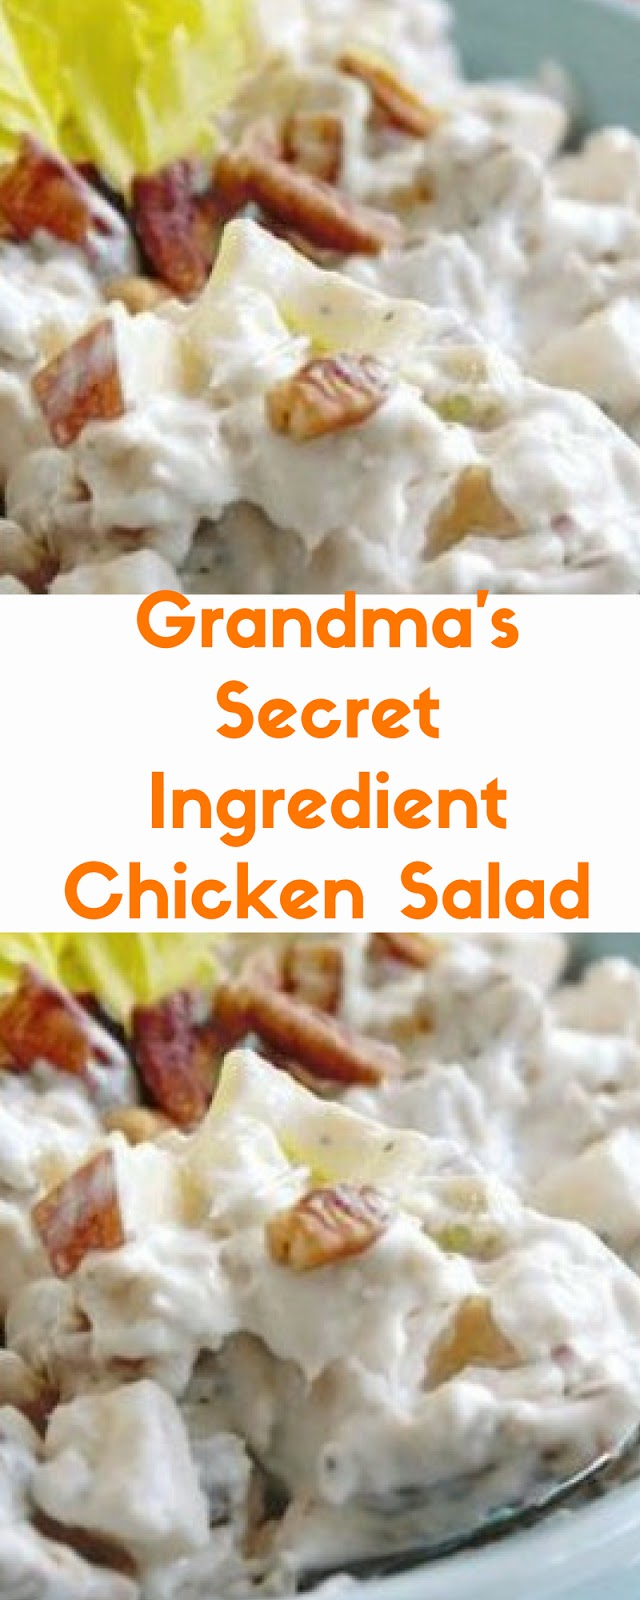 Grandma's Secret Ingredient Chicken Salad Recipes